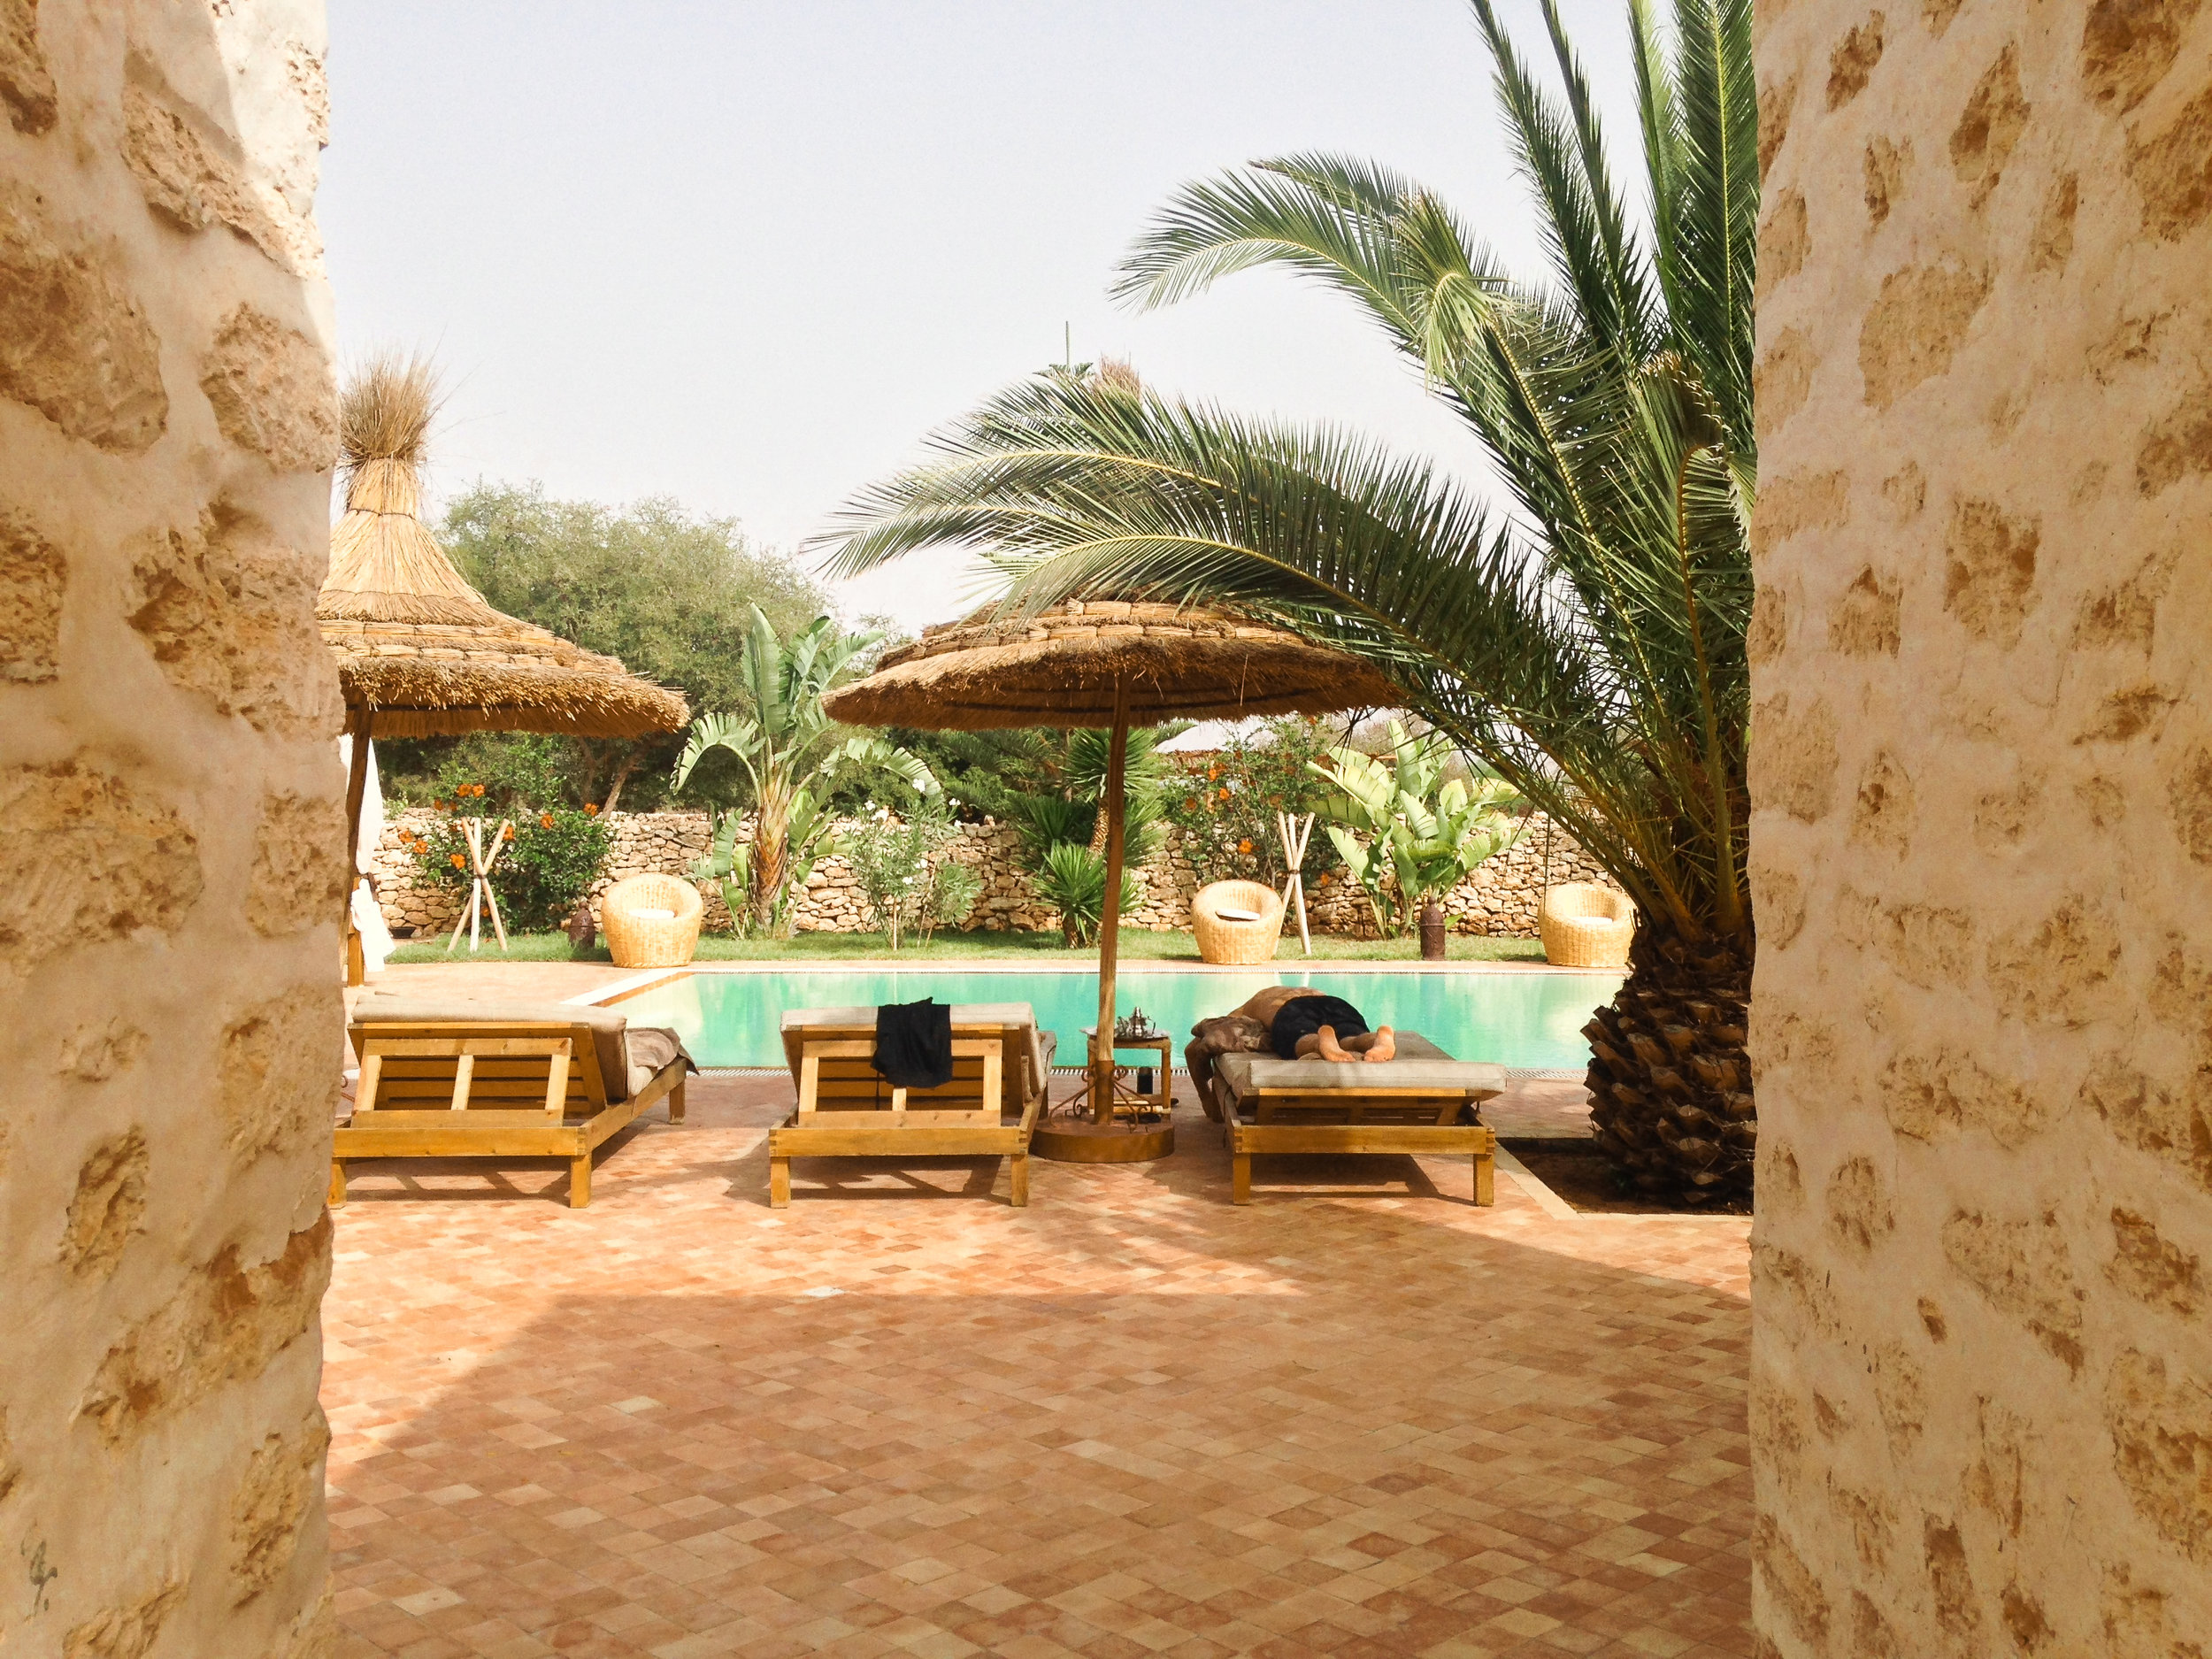 This Beautiful Bed and Breakfast in Morocco was owned by a French Couple. They were lovely, but unfortunately, we could not really speak to them.